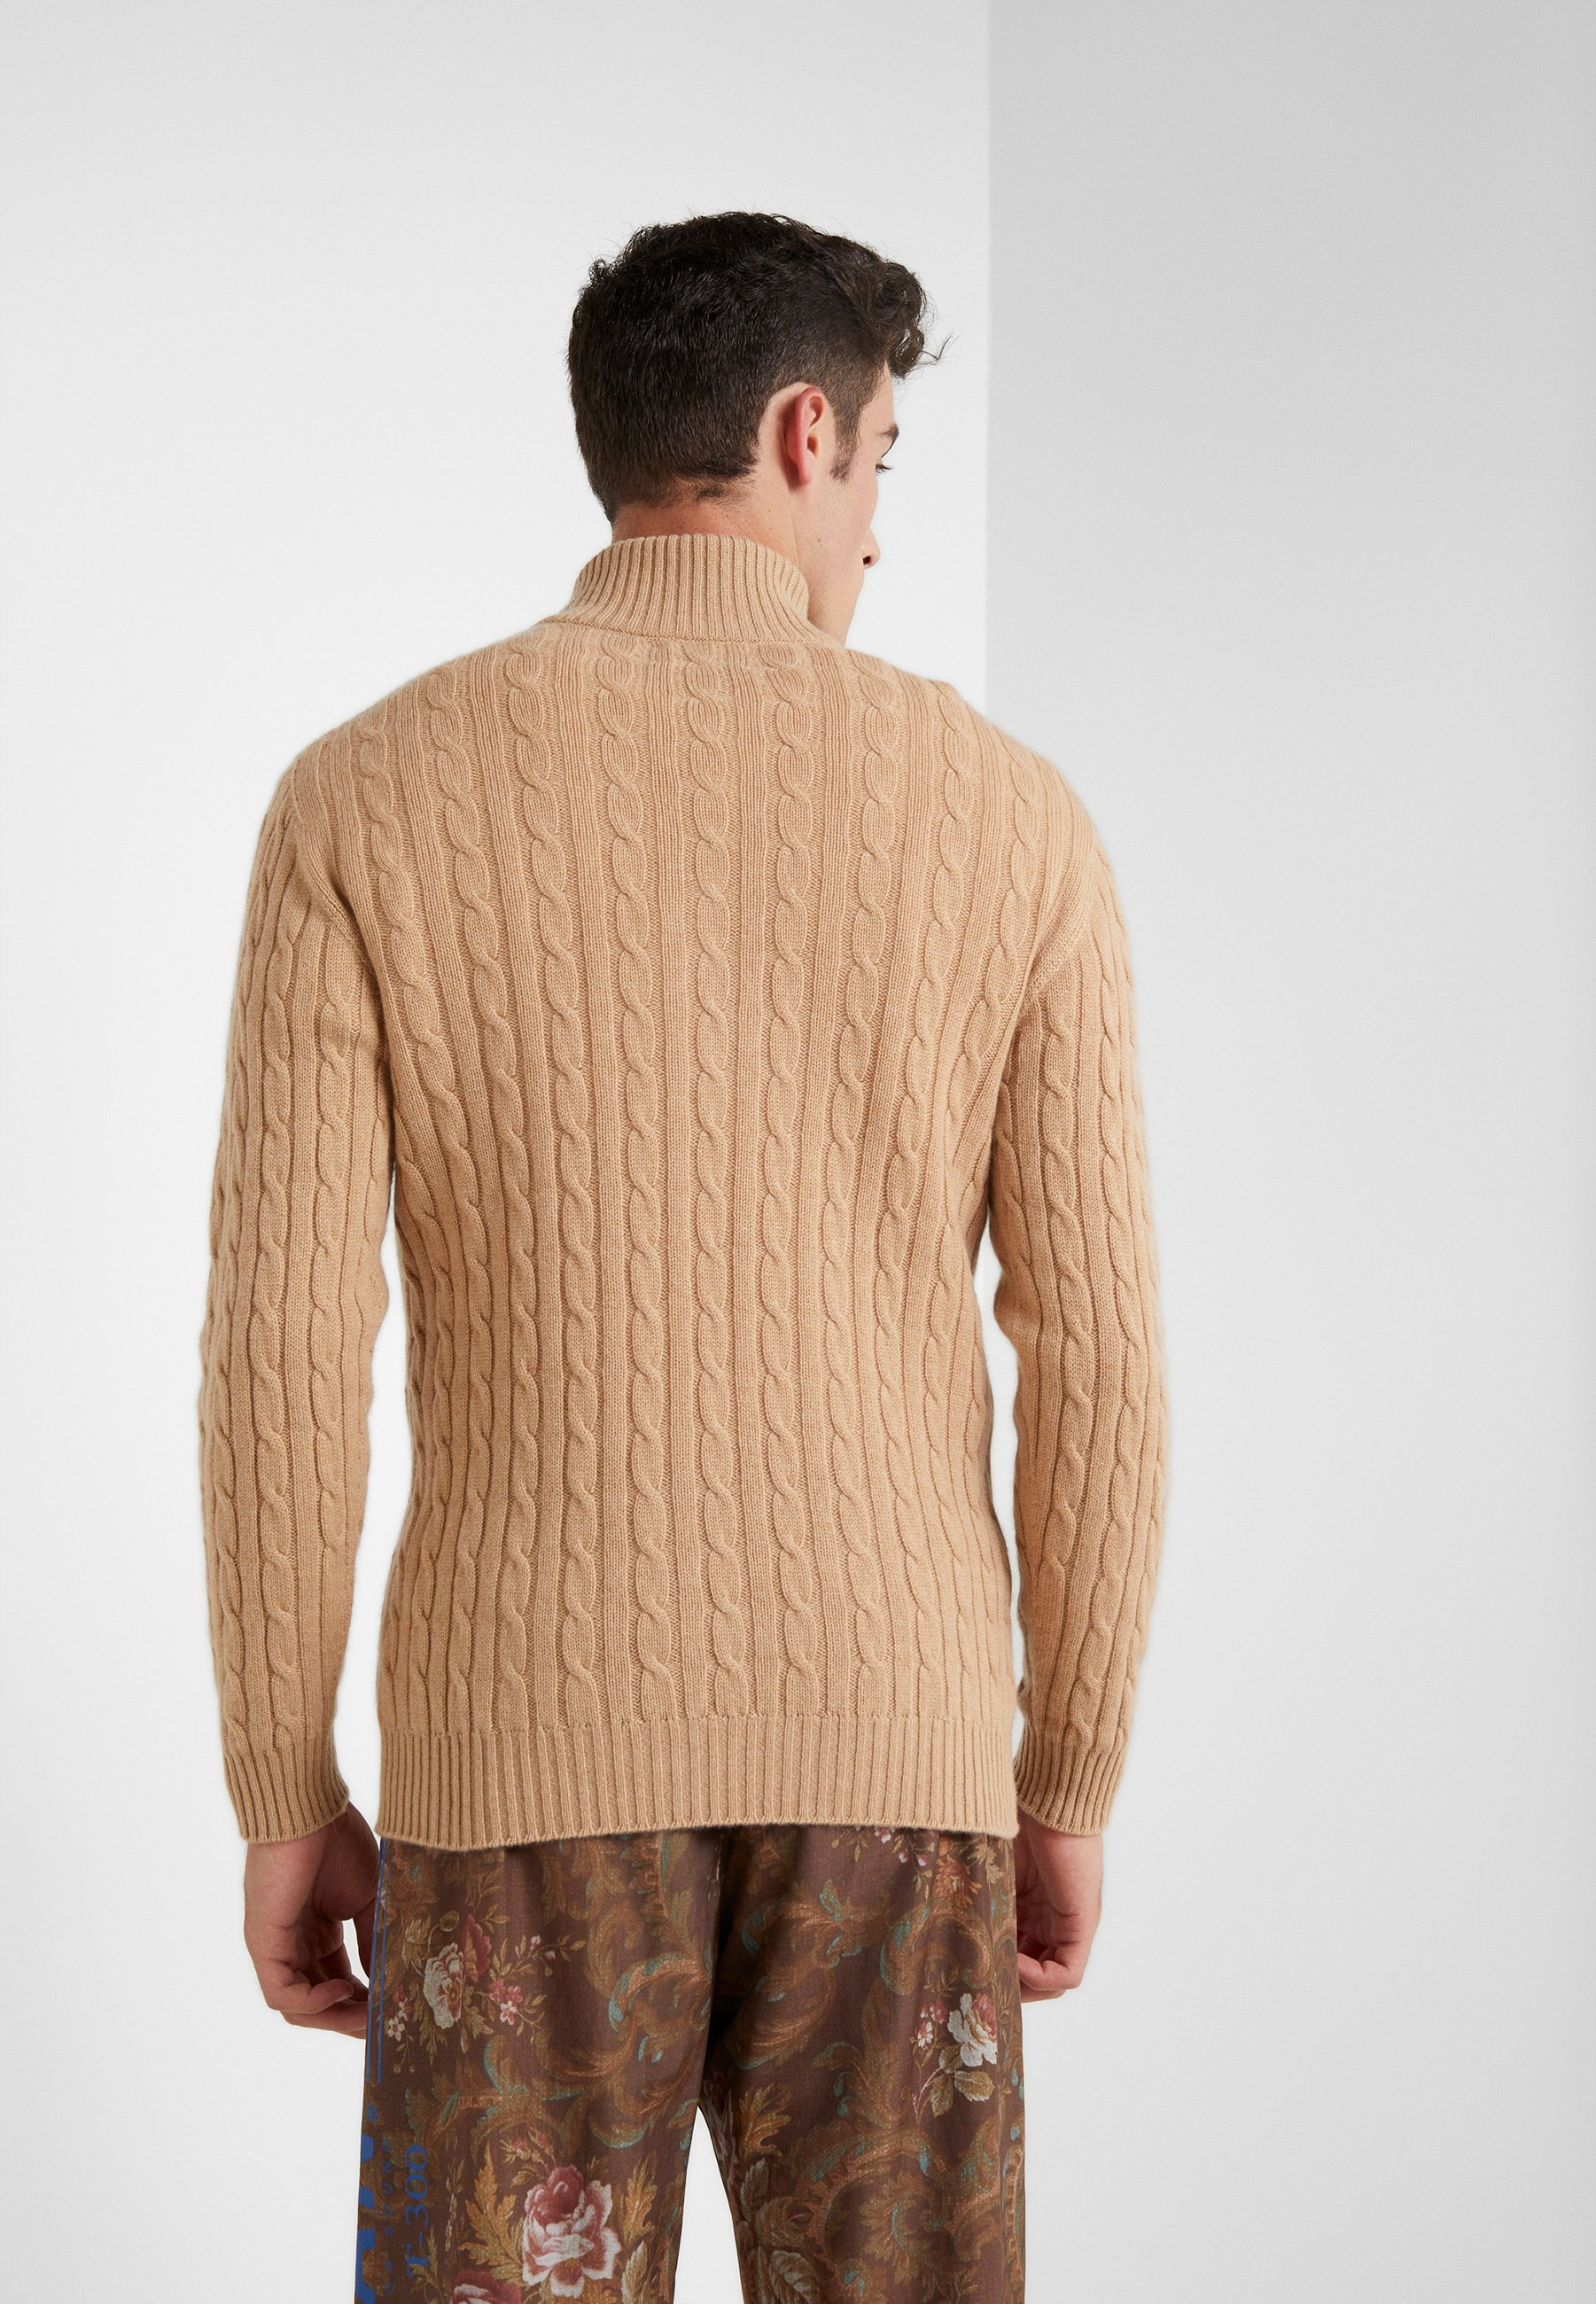 Johnstons PulloverBaby Johnstons Camel Cashmere Johnstons Camel Cashmere Johnstons Camel Cashmere Cashmere PulloverBaby PulloverBaby PulloverBaby ZuXiTOPkw